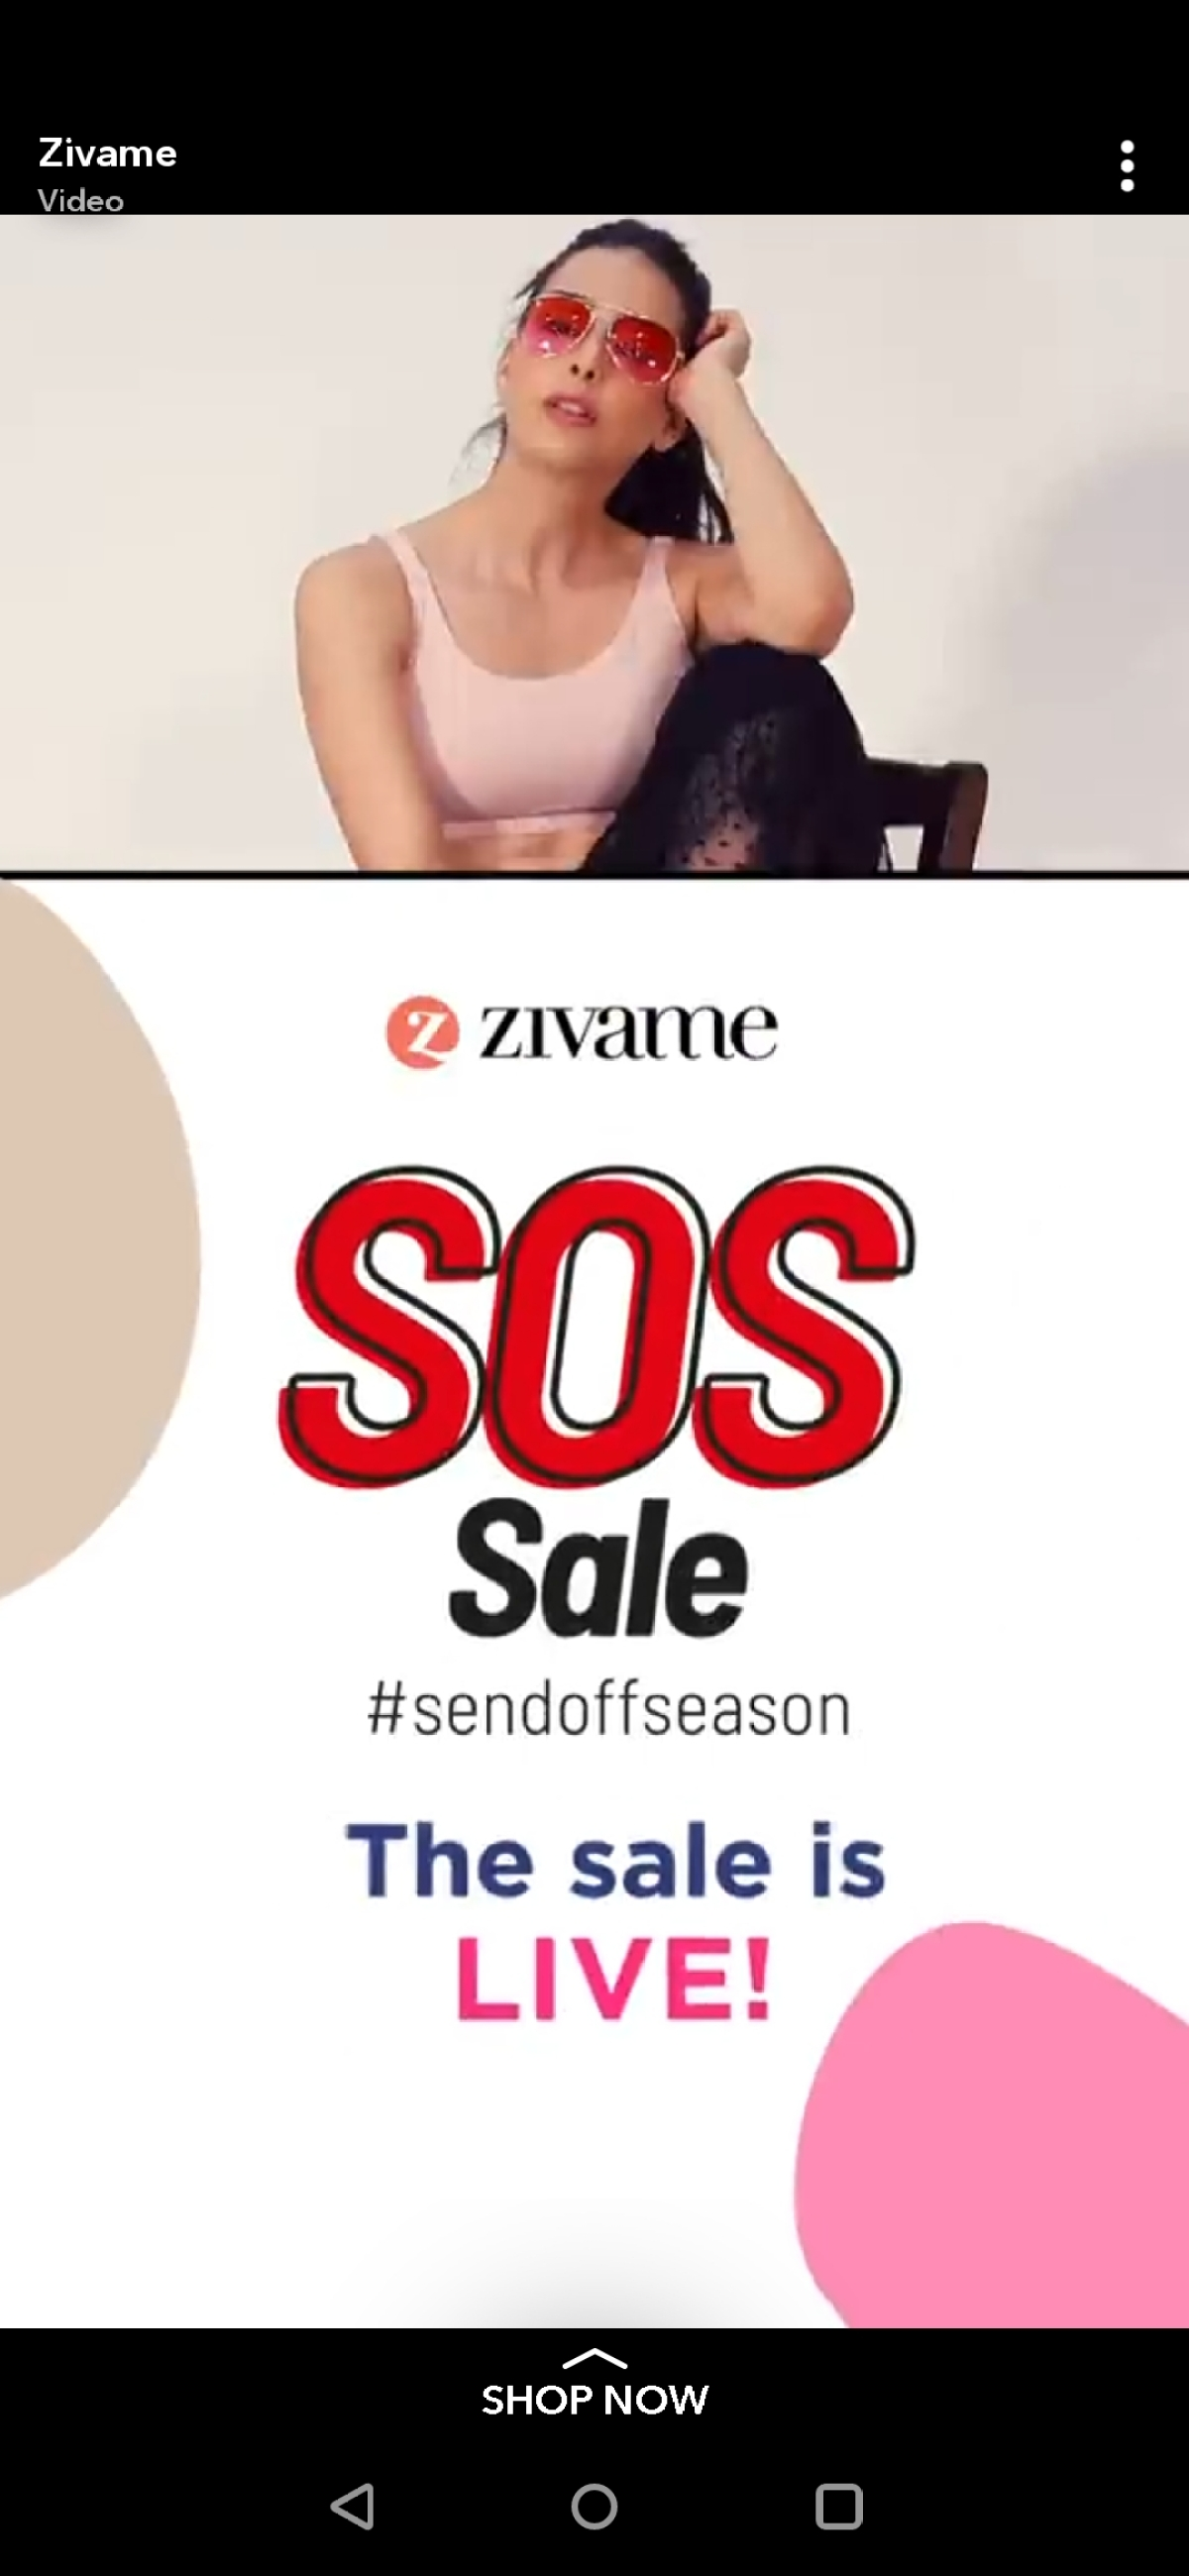 An ad for a Zivame sale